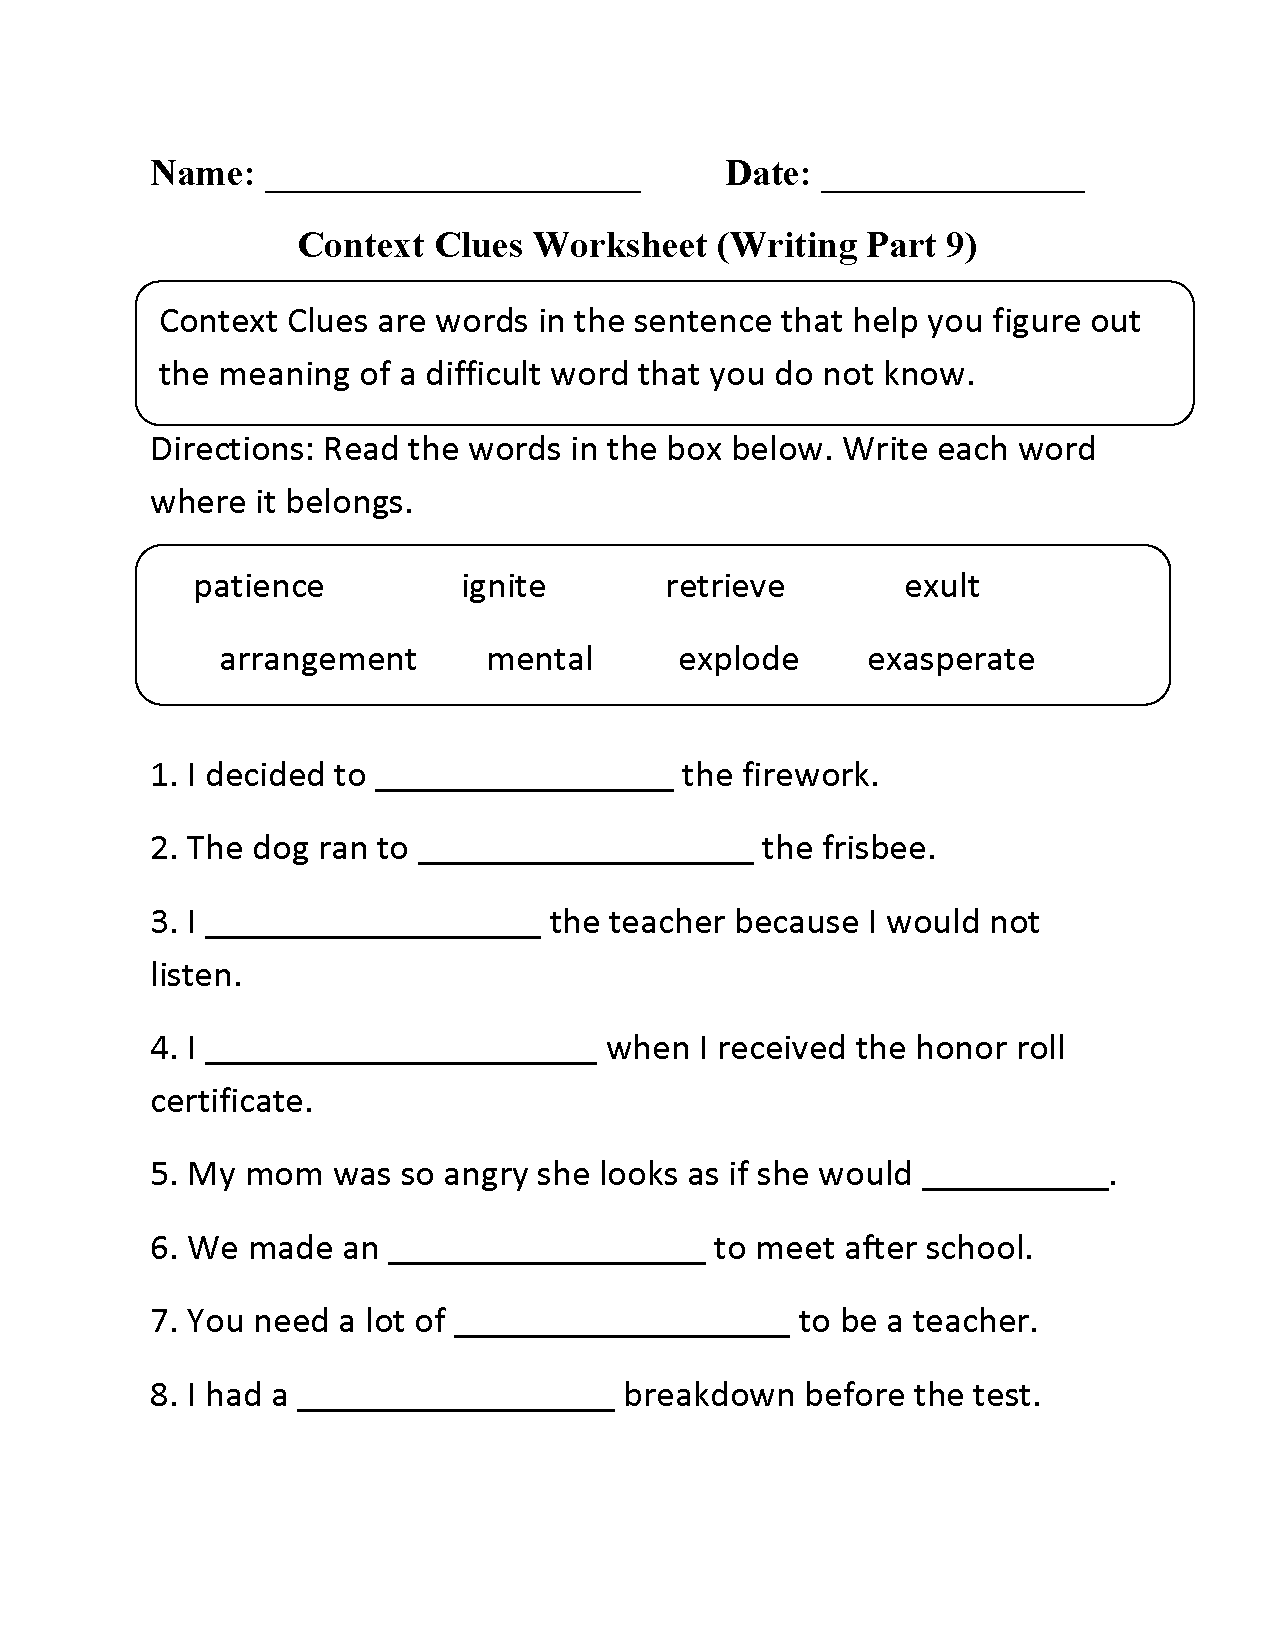 Worksheets Types Of Context Clues Worksheets types of context clues worksheets free library worksheet word mystery clues